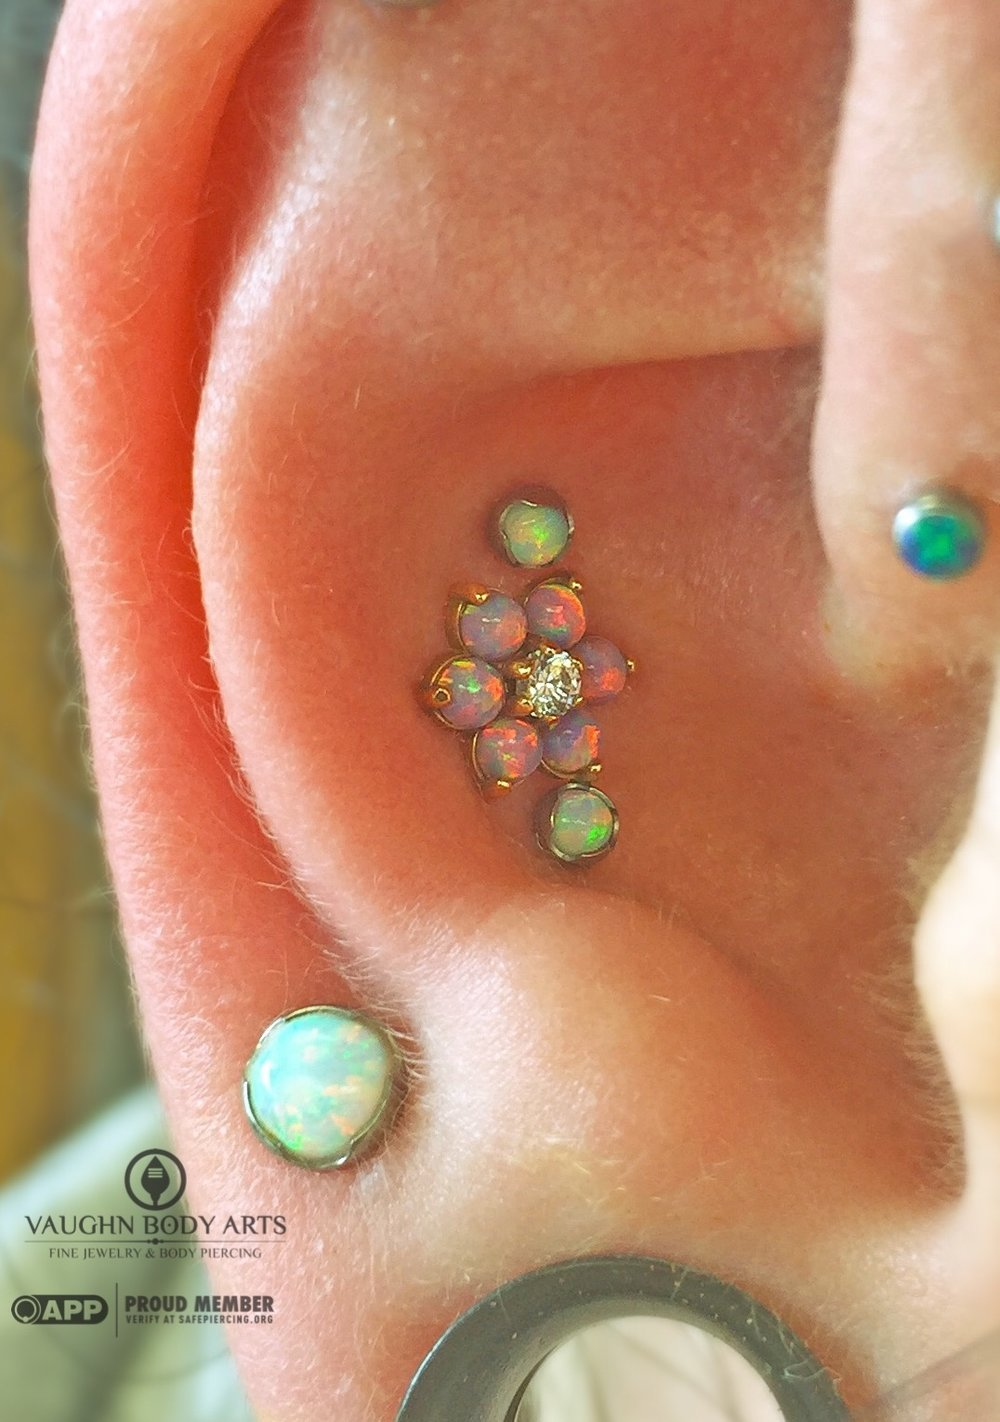 Triple conch piercings featuring jewelry from Anatometal. 18k rose gold flower with light purple opals and two little white opals for accents.